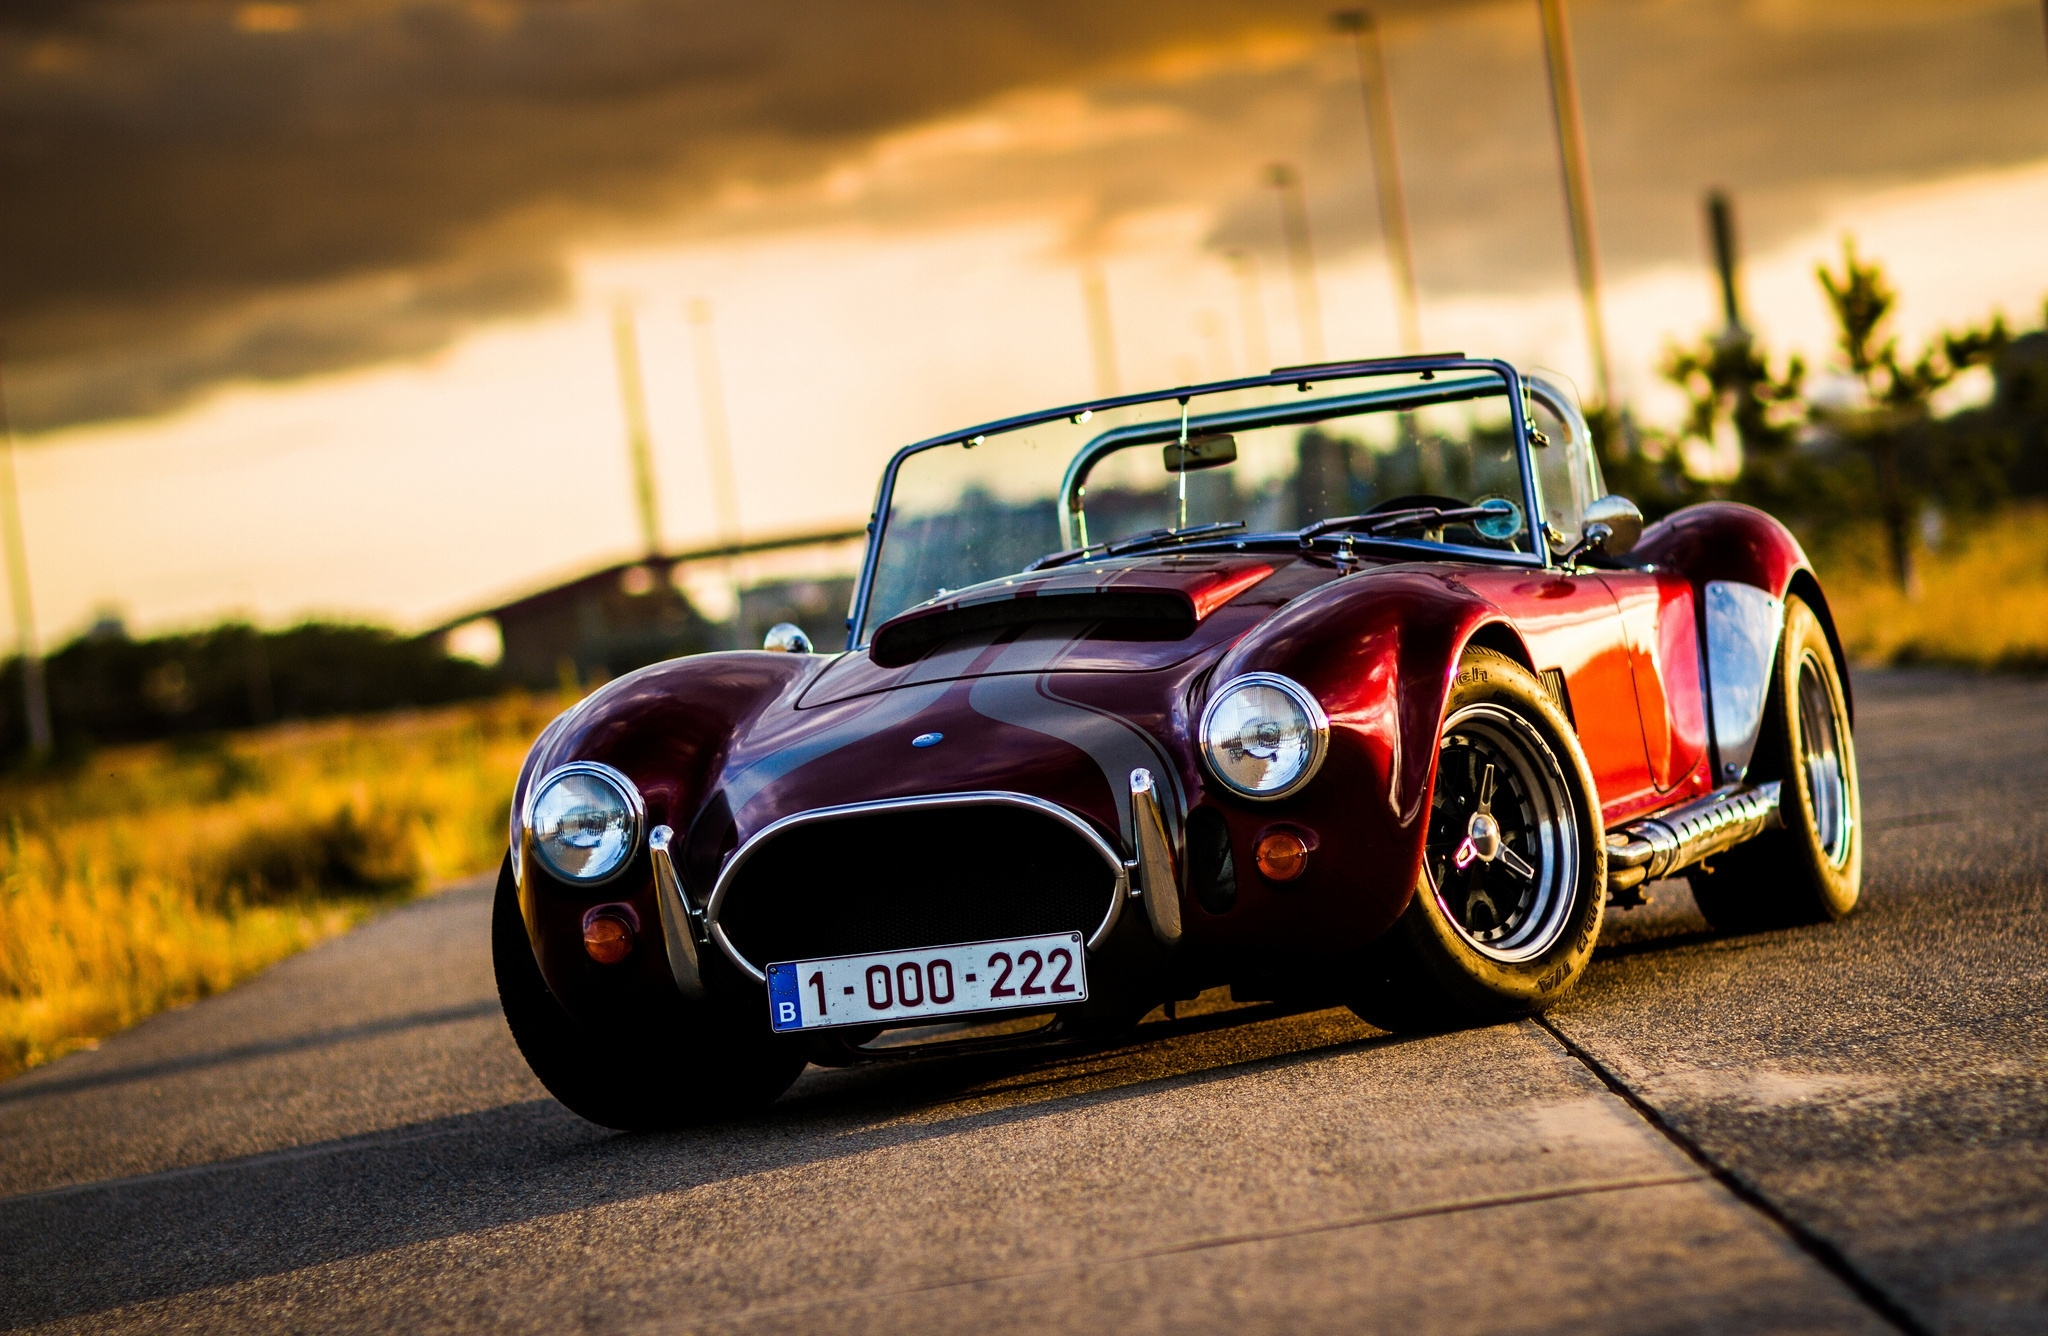 693 classic car hd wallpapers | background images - wallpaper abyss